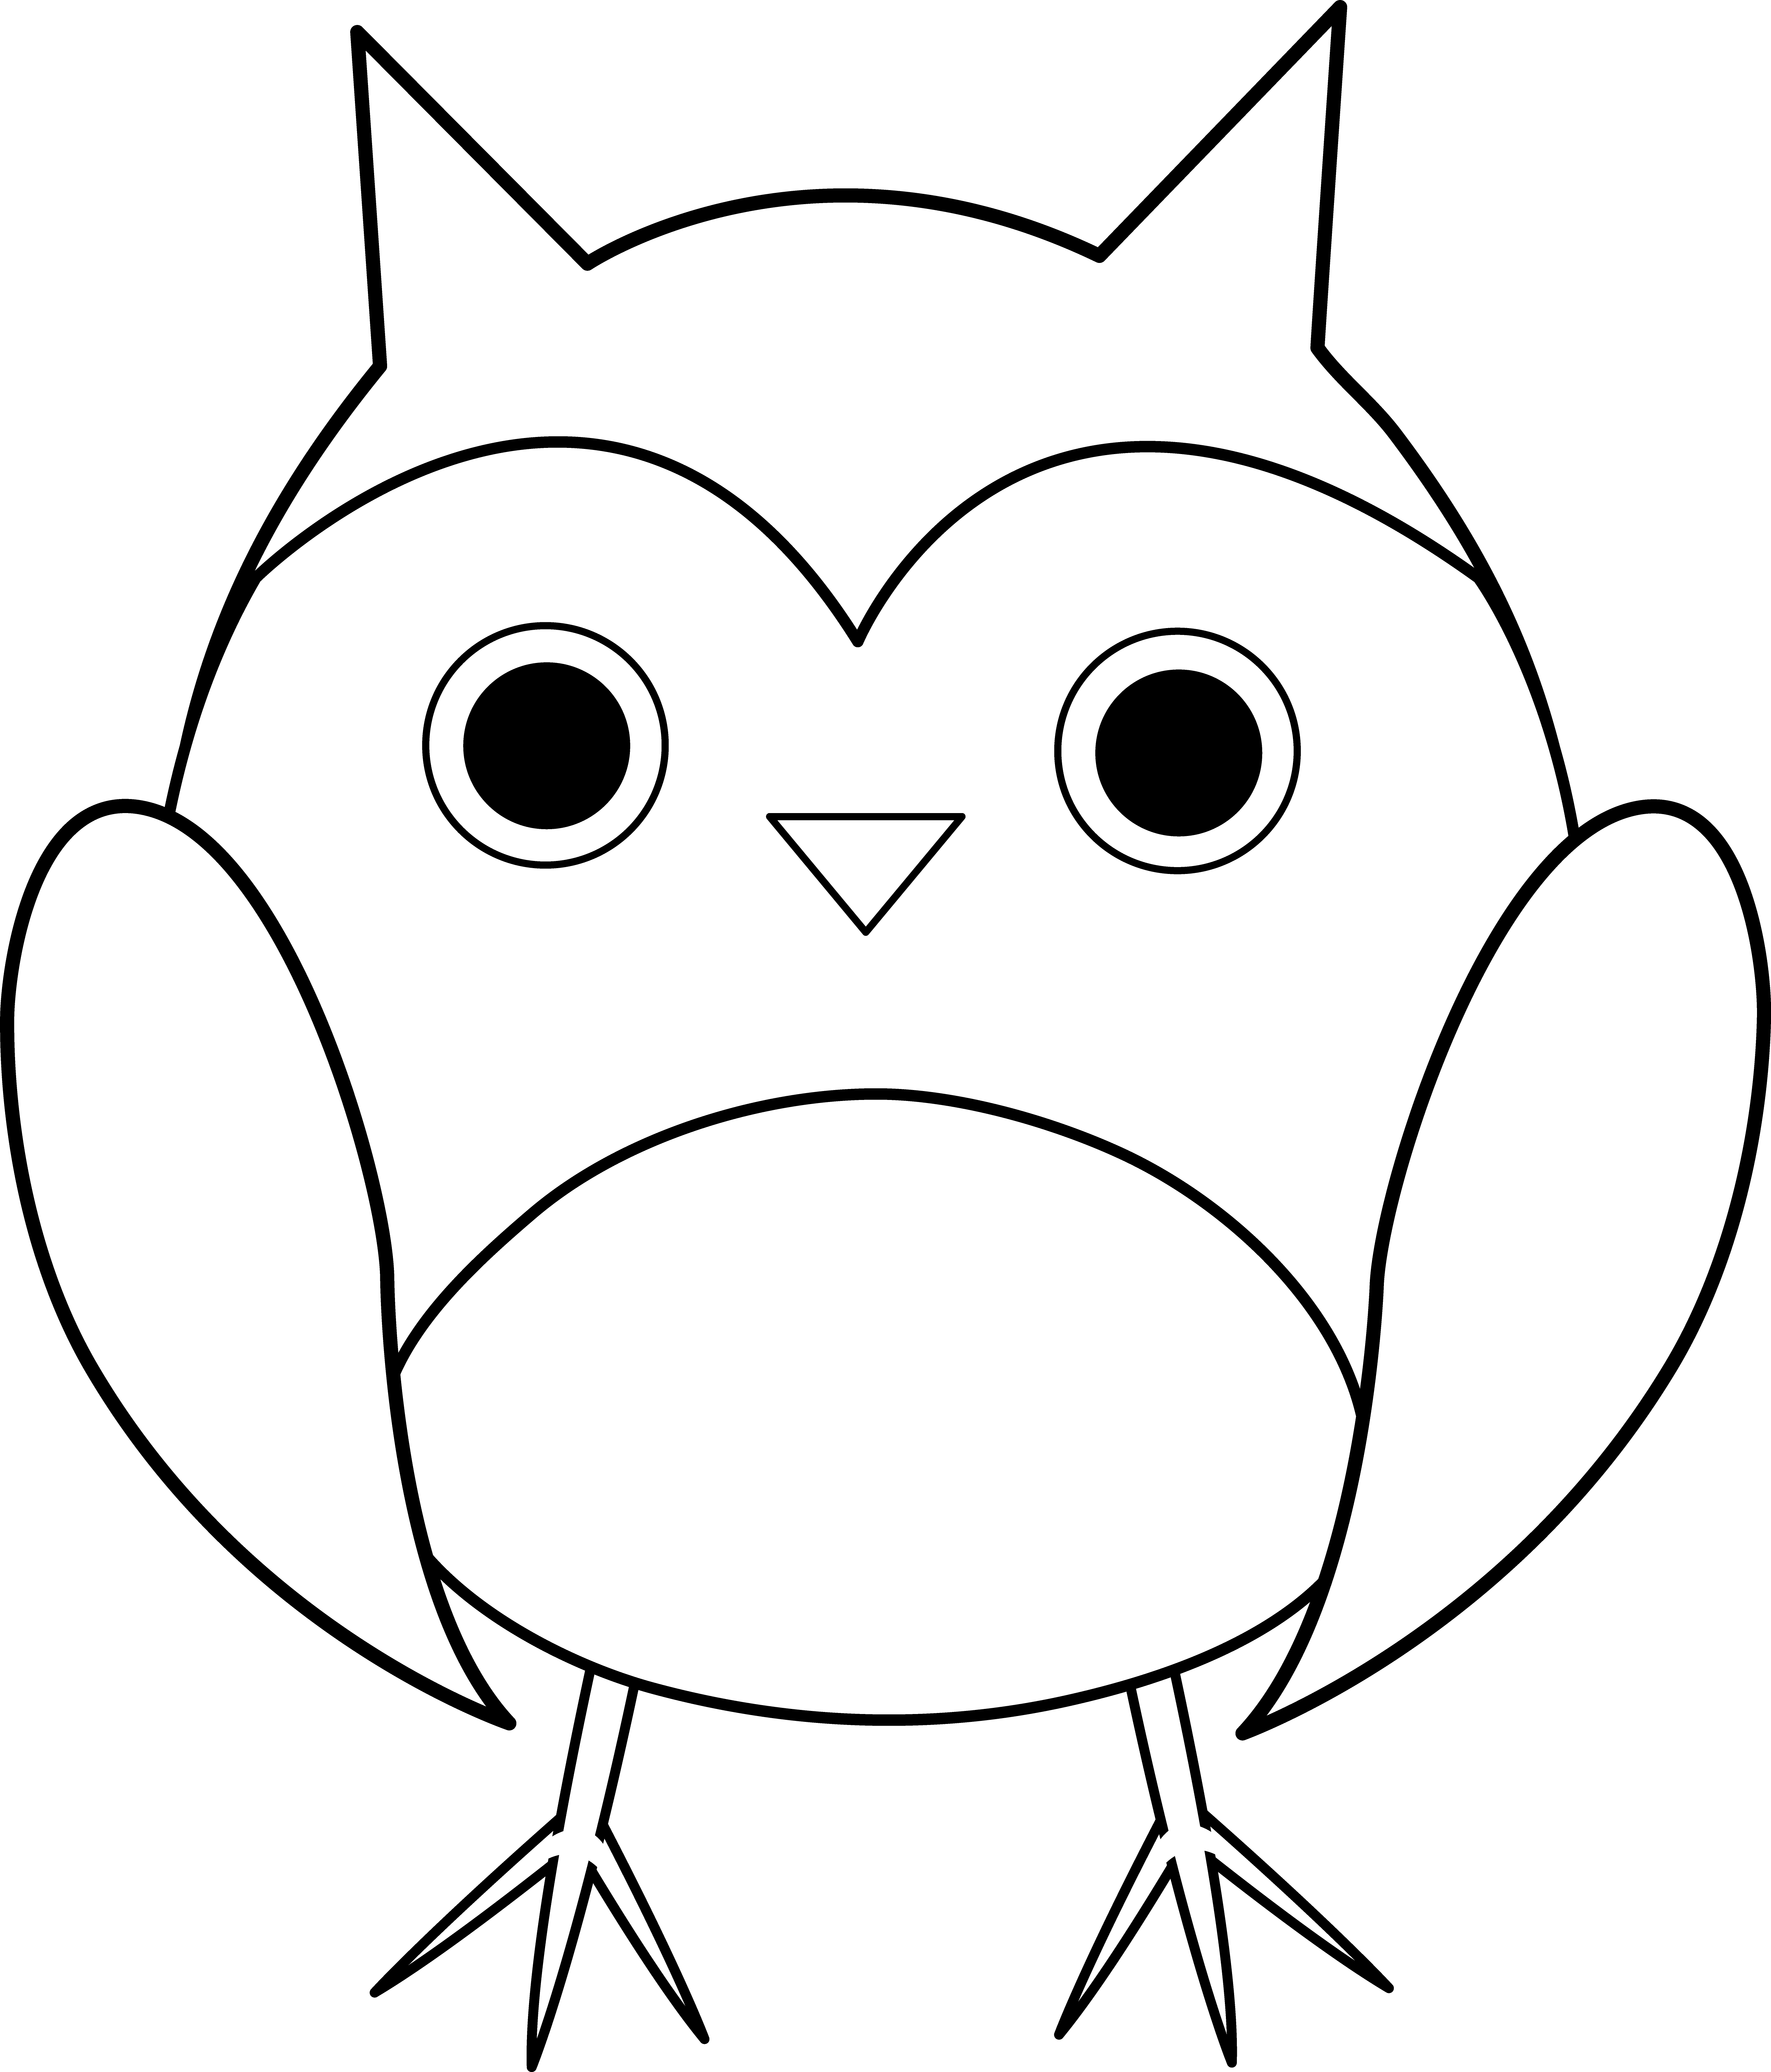 png library download Drawing owl cute. Google image result for